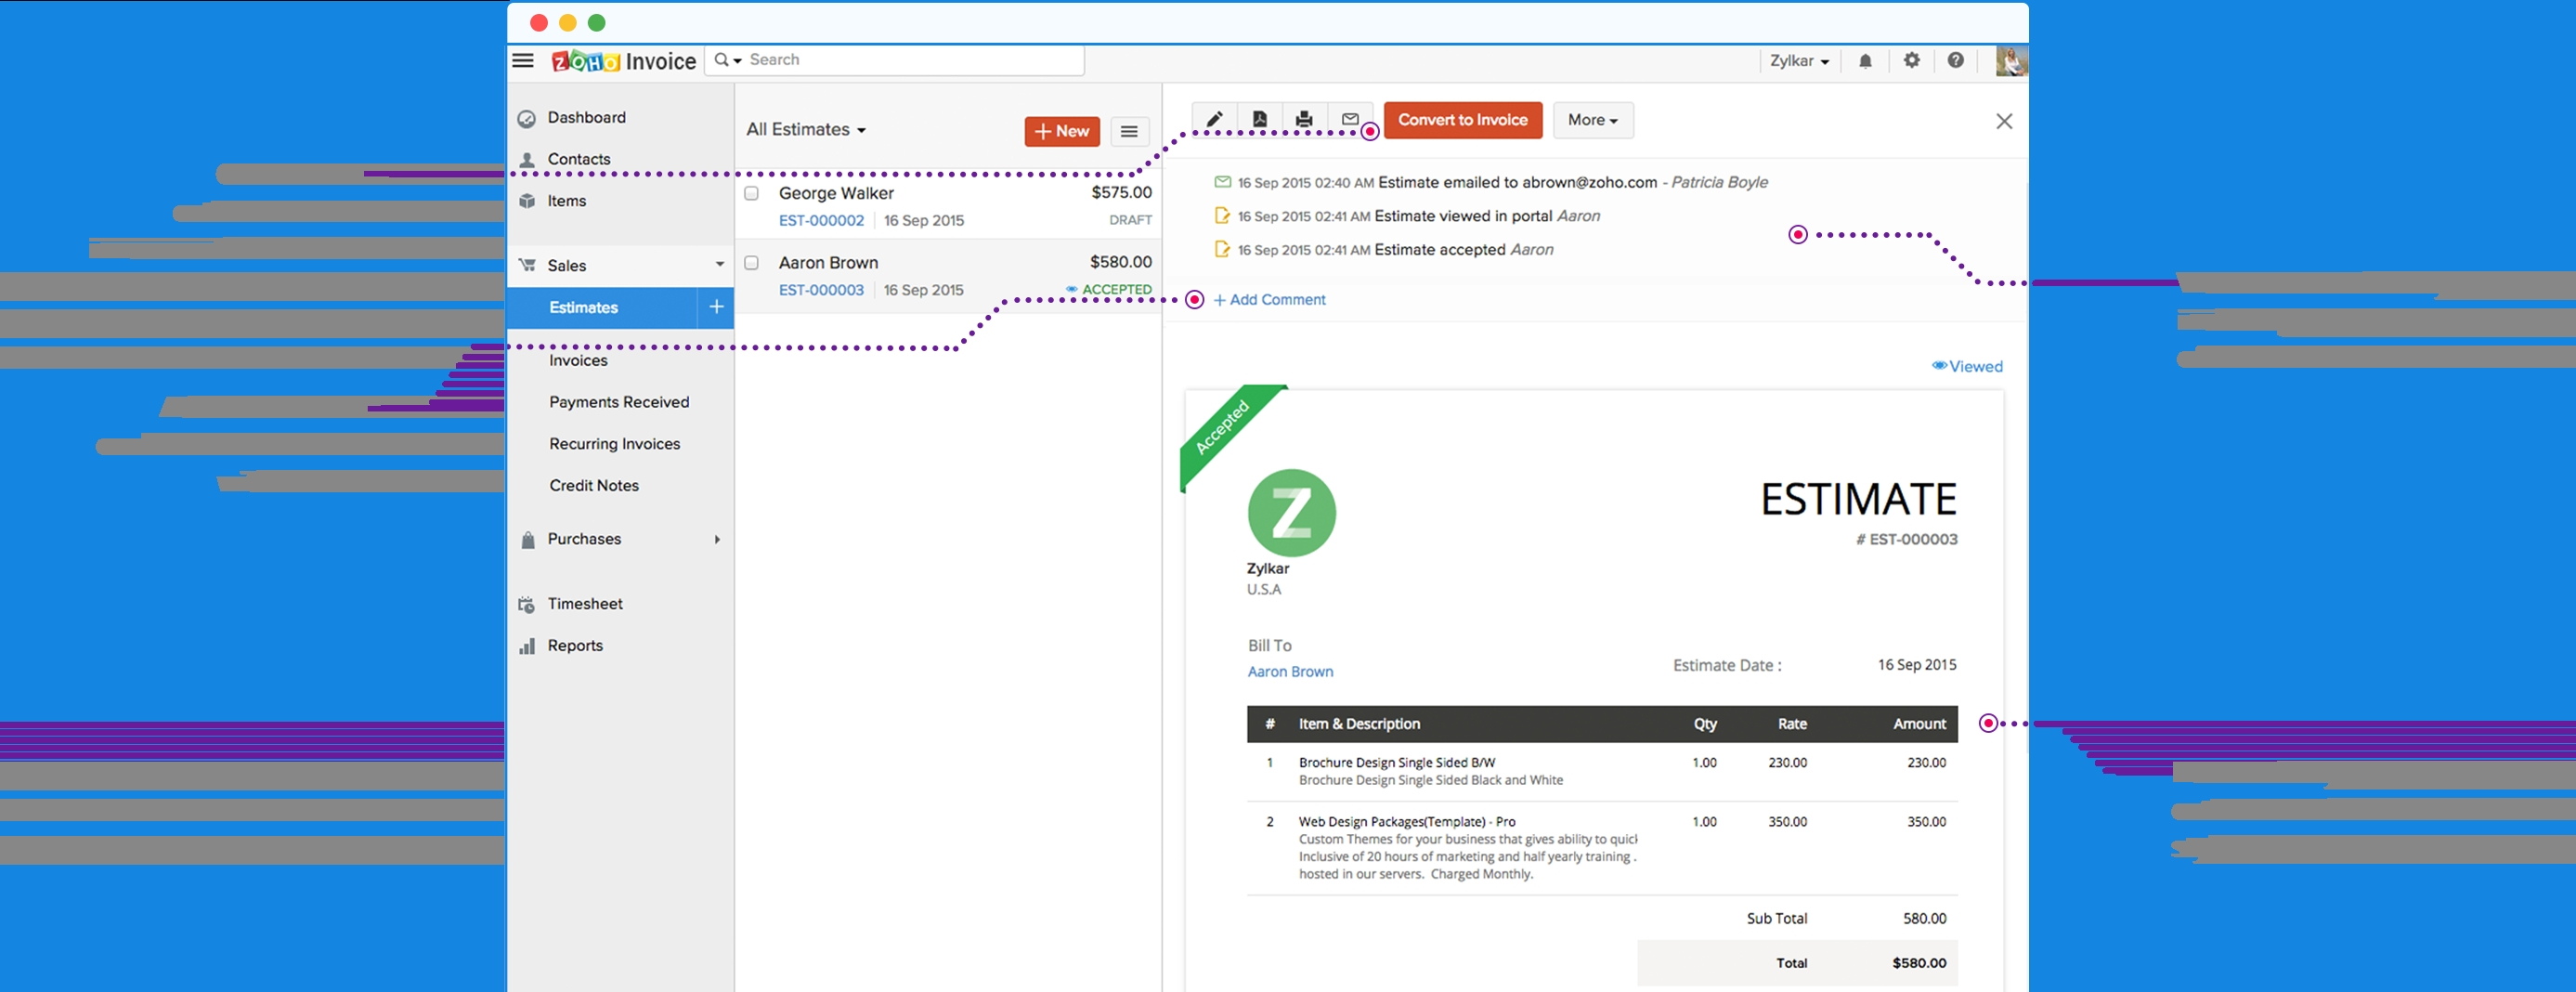 features online invoices software invoices and estimates software